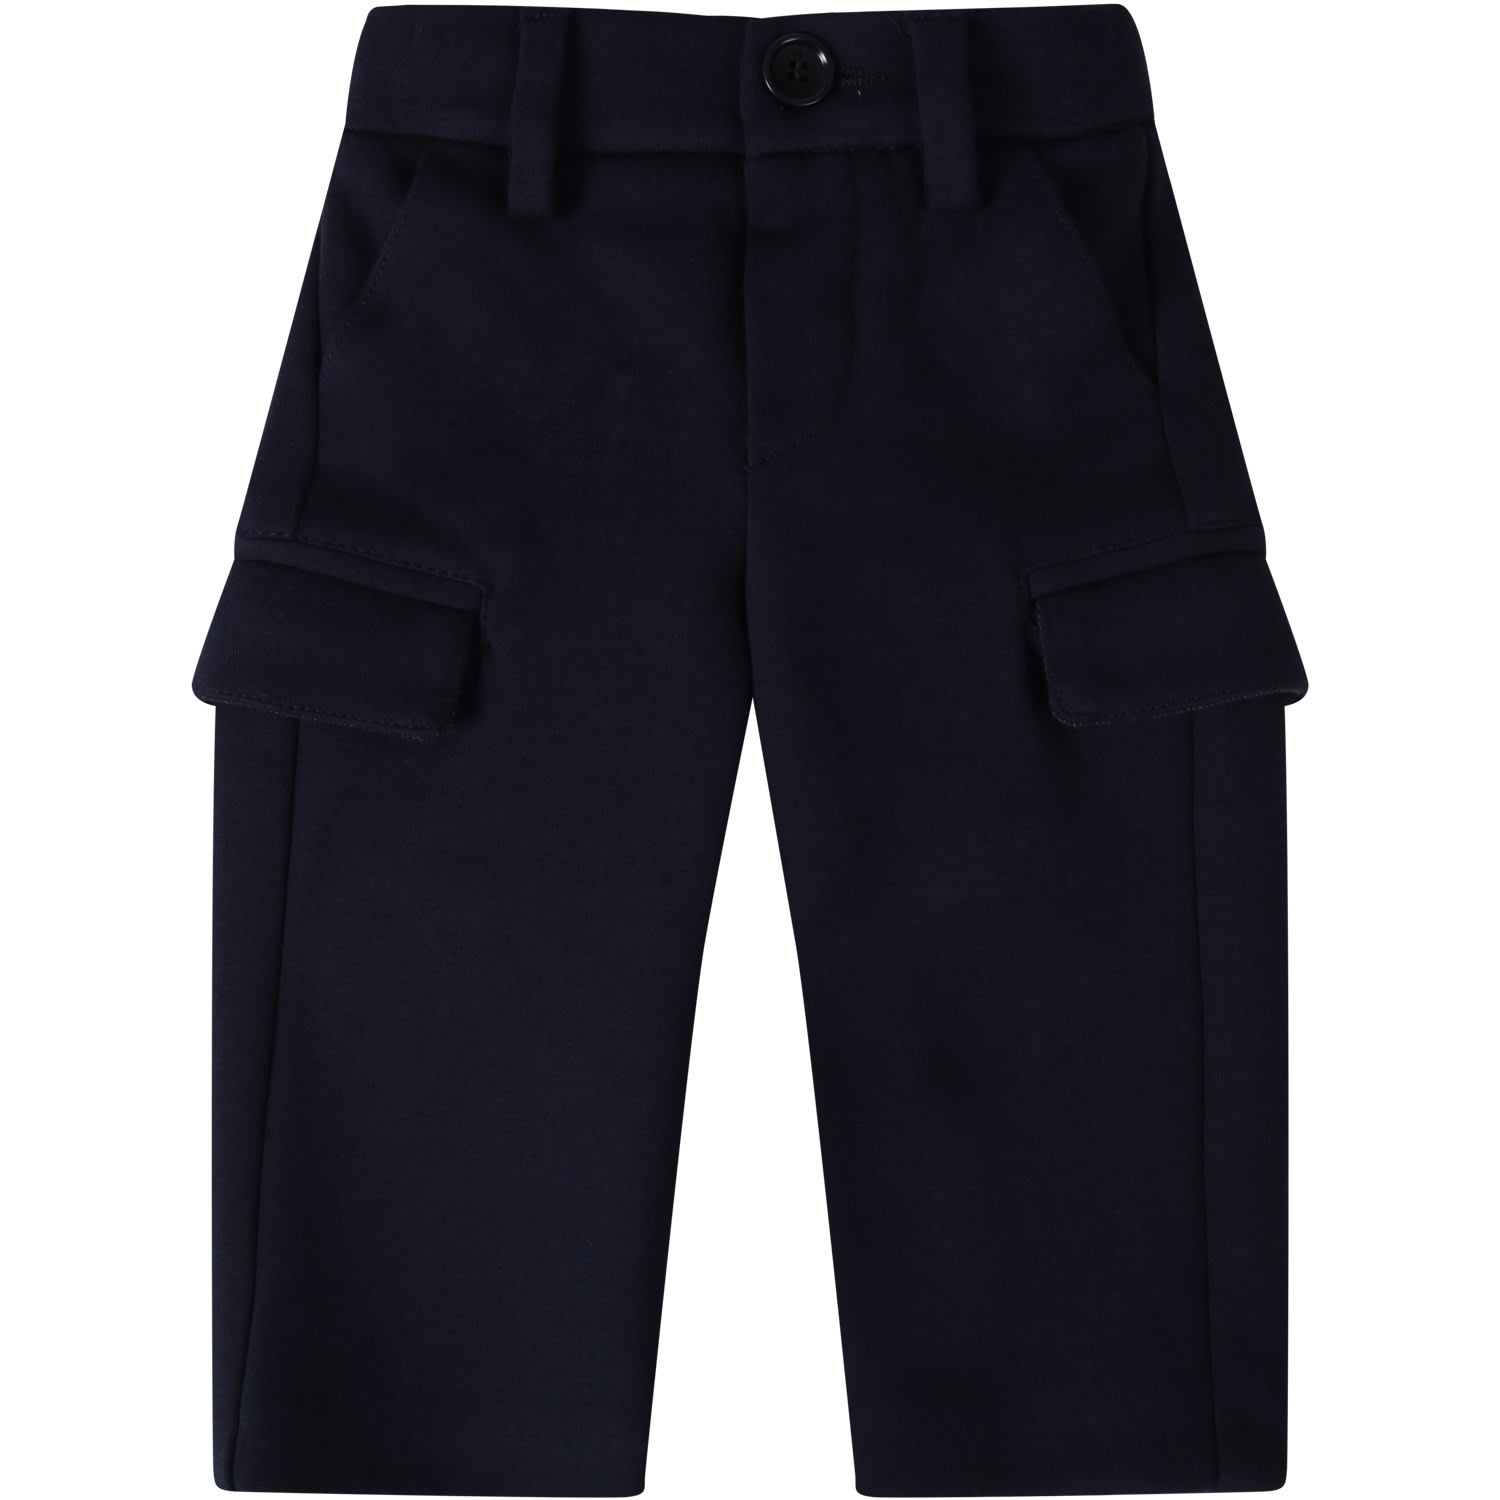 Color: Blue Blue pants, with elatisicized waistband on the back, flapped pockets and buttoned closure, on the front. Its embellished with embroidered logo, on the back. 65% Cotton 26% Polyester 9% Polyamide Dry clean.